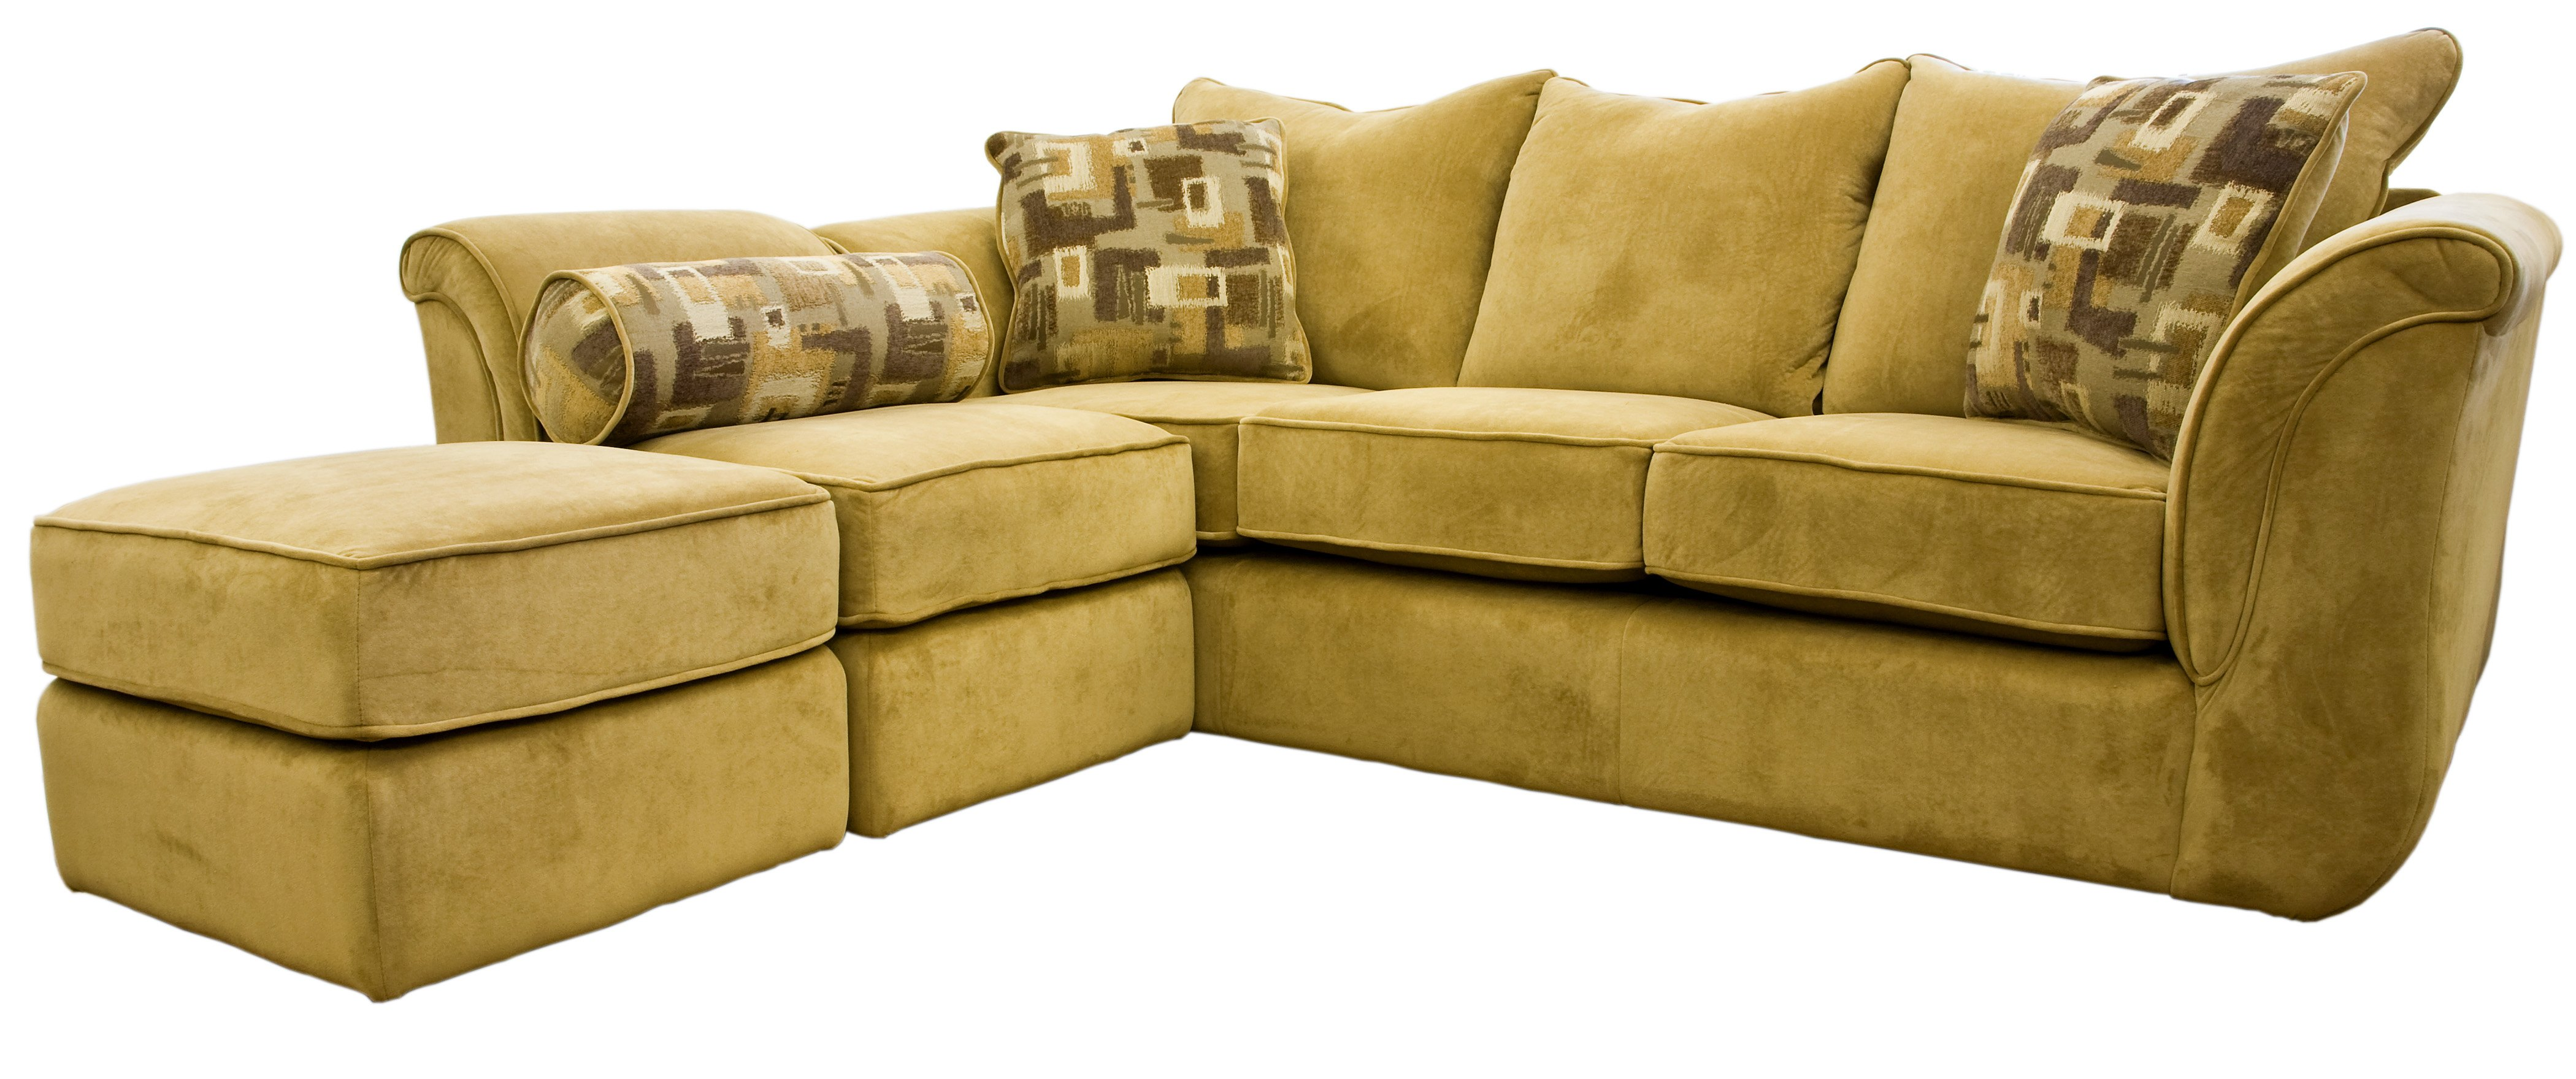 Sectional Sofa And Area Rug Ideas Ehow